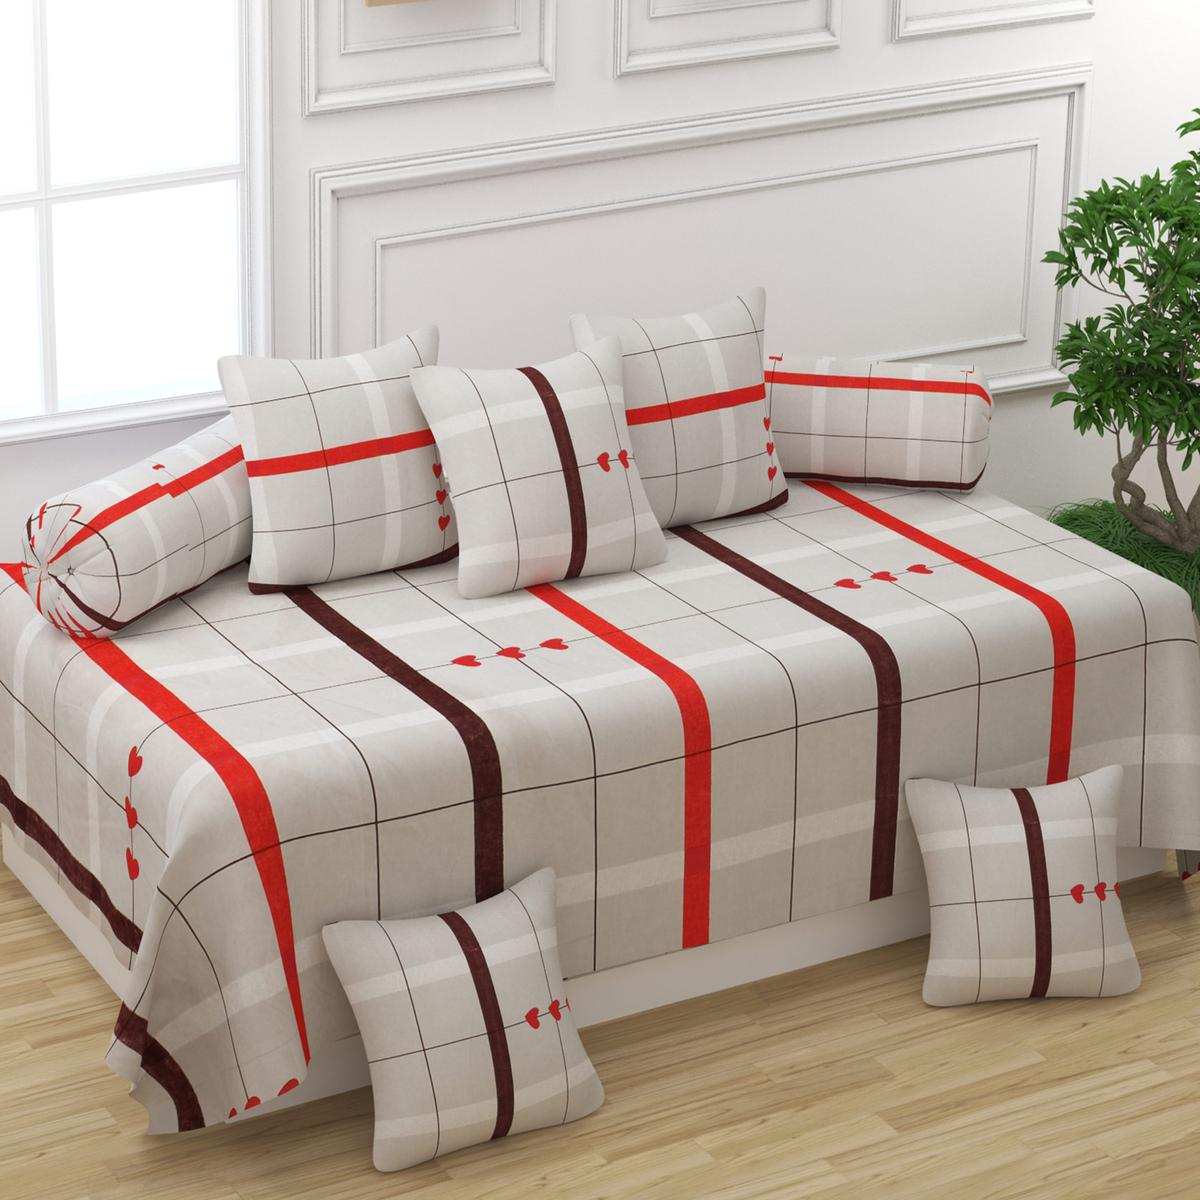 Adirav - Attractive Beige Red Check Printed Glace Cotton Single Bedsheet With Five Cushion Cover & Two Bolster Pillow Cover